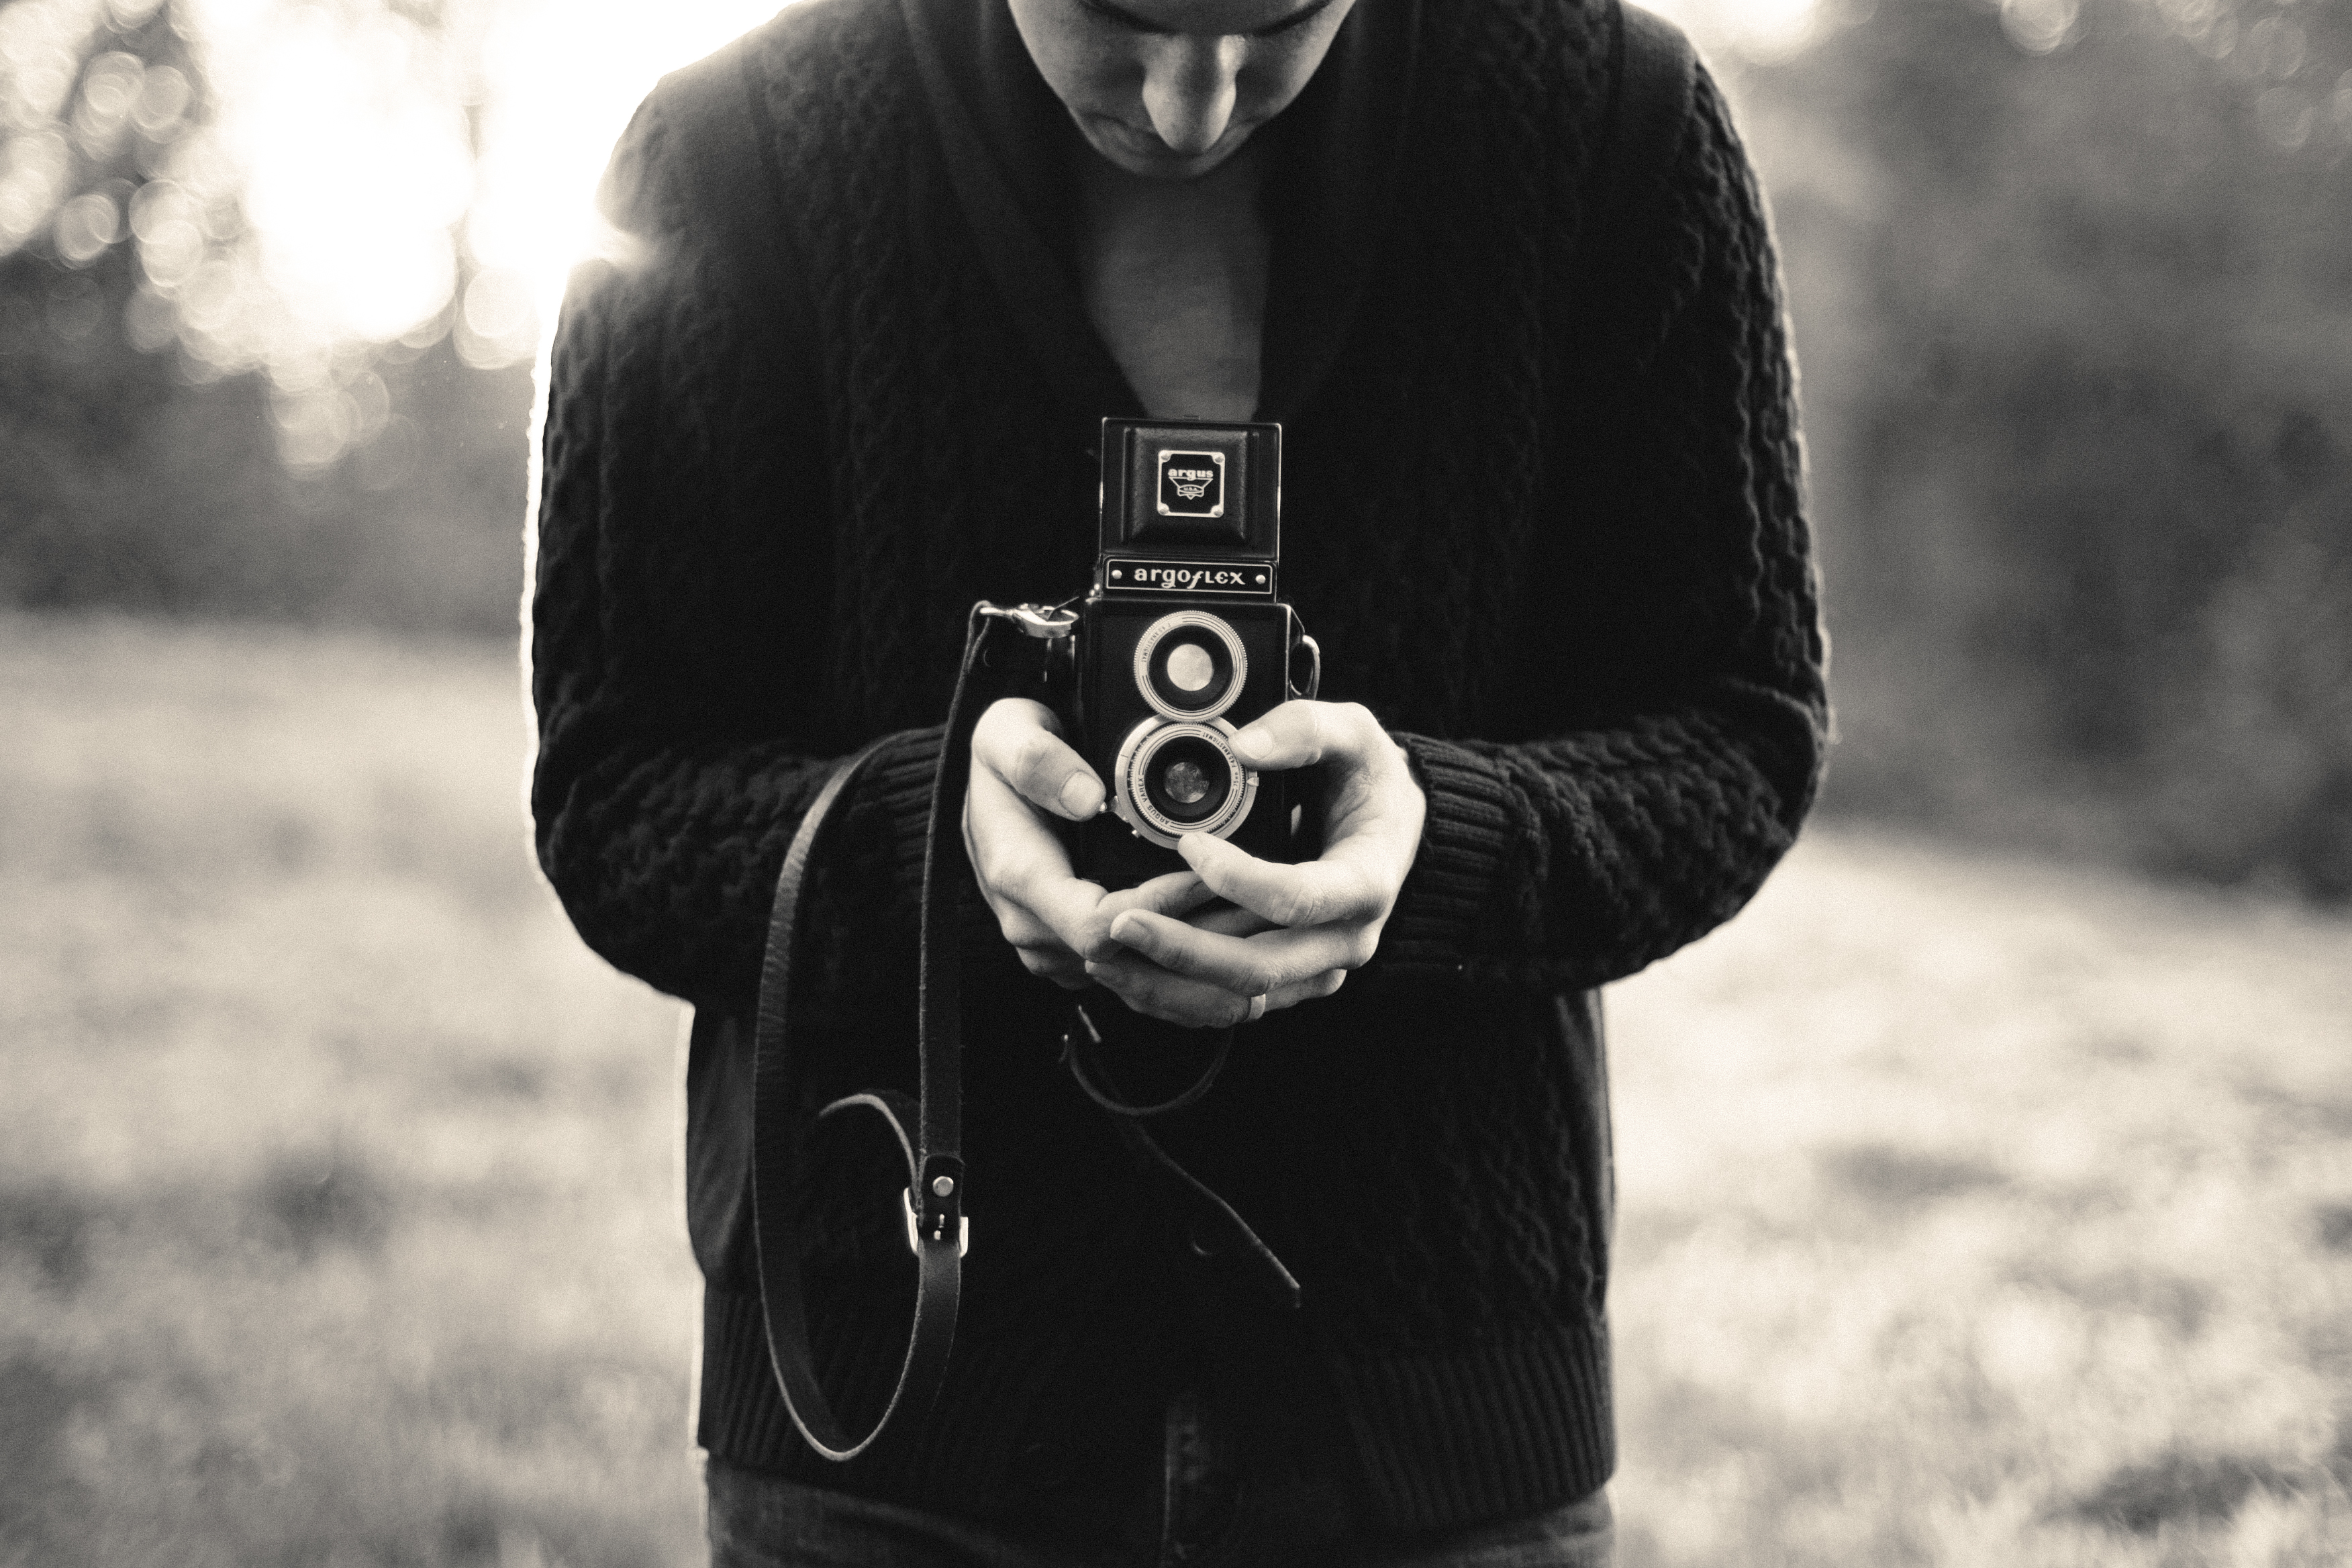 Vintage Camera And Professional Photographer